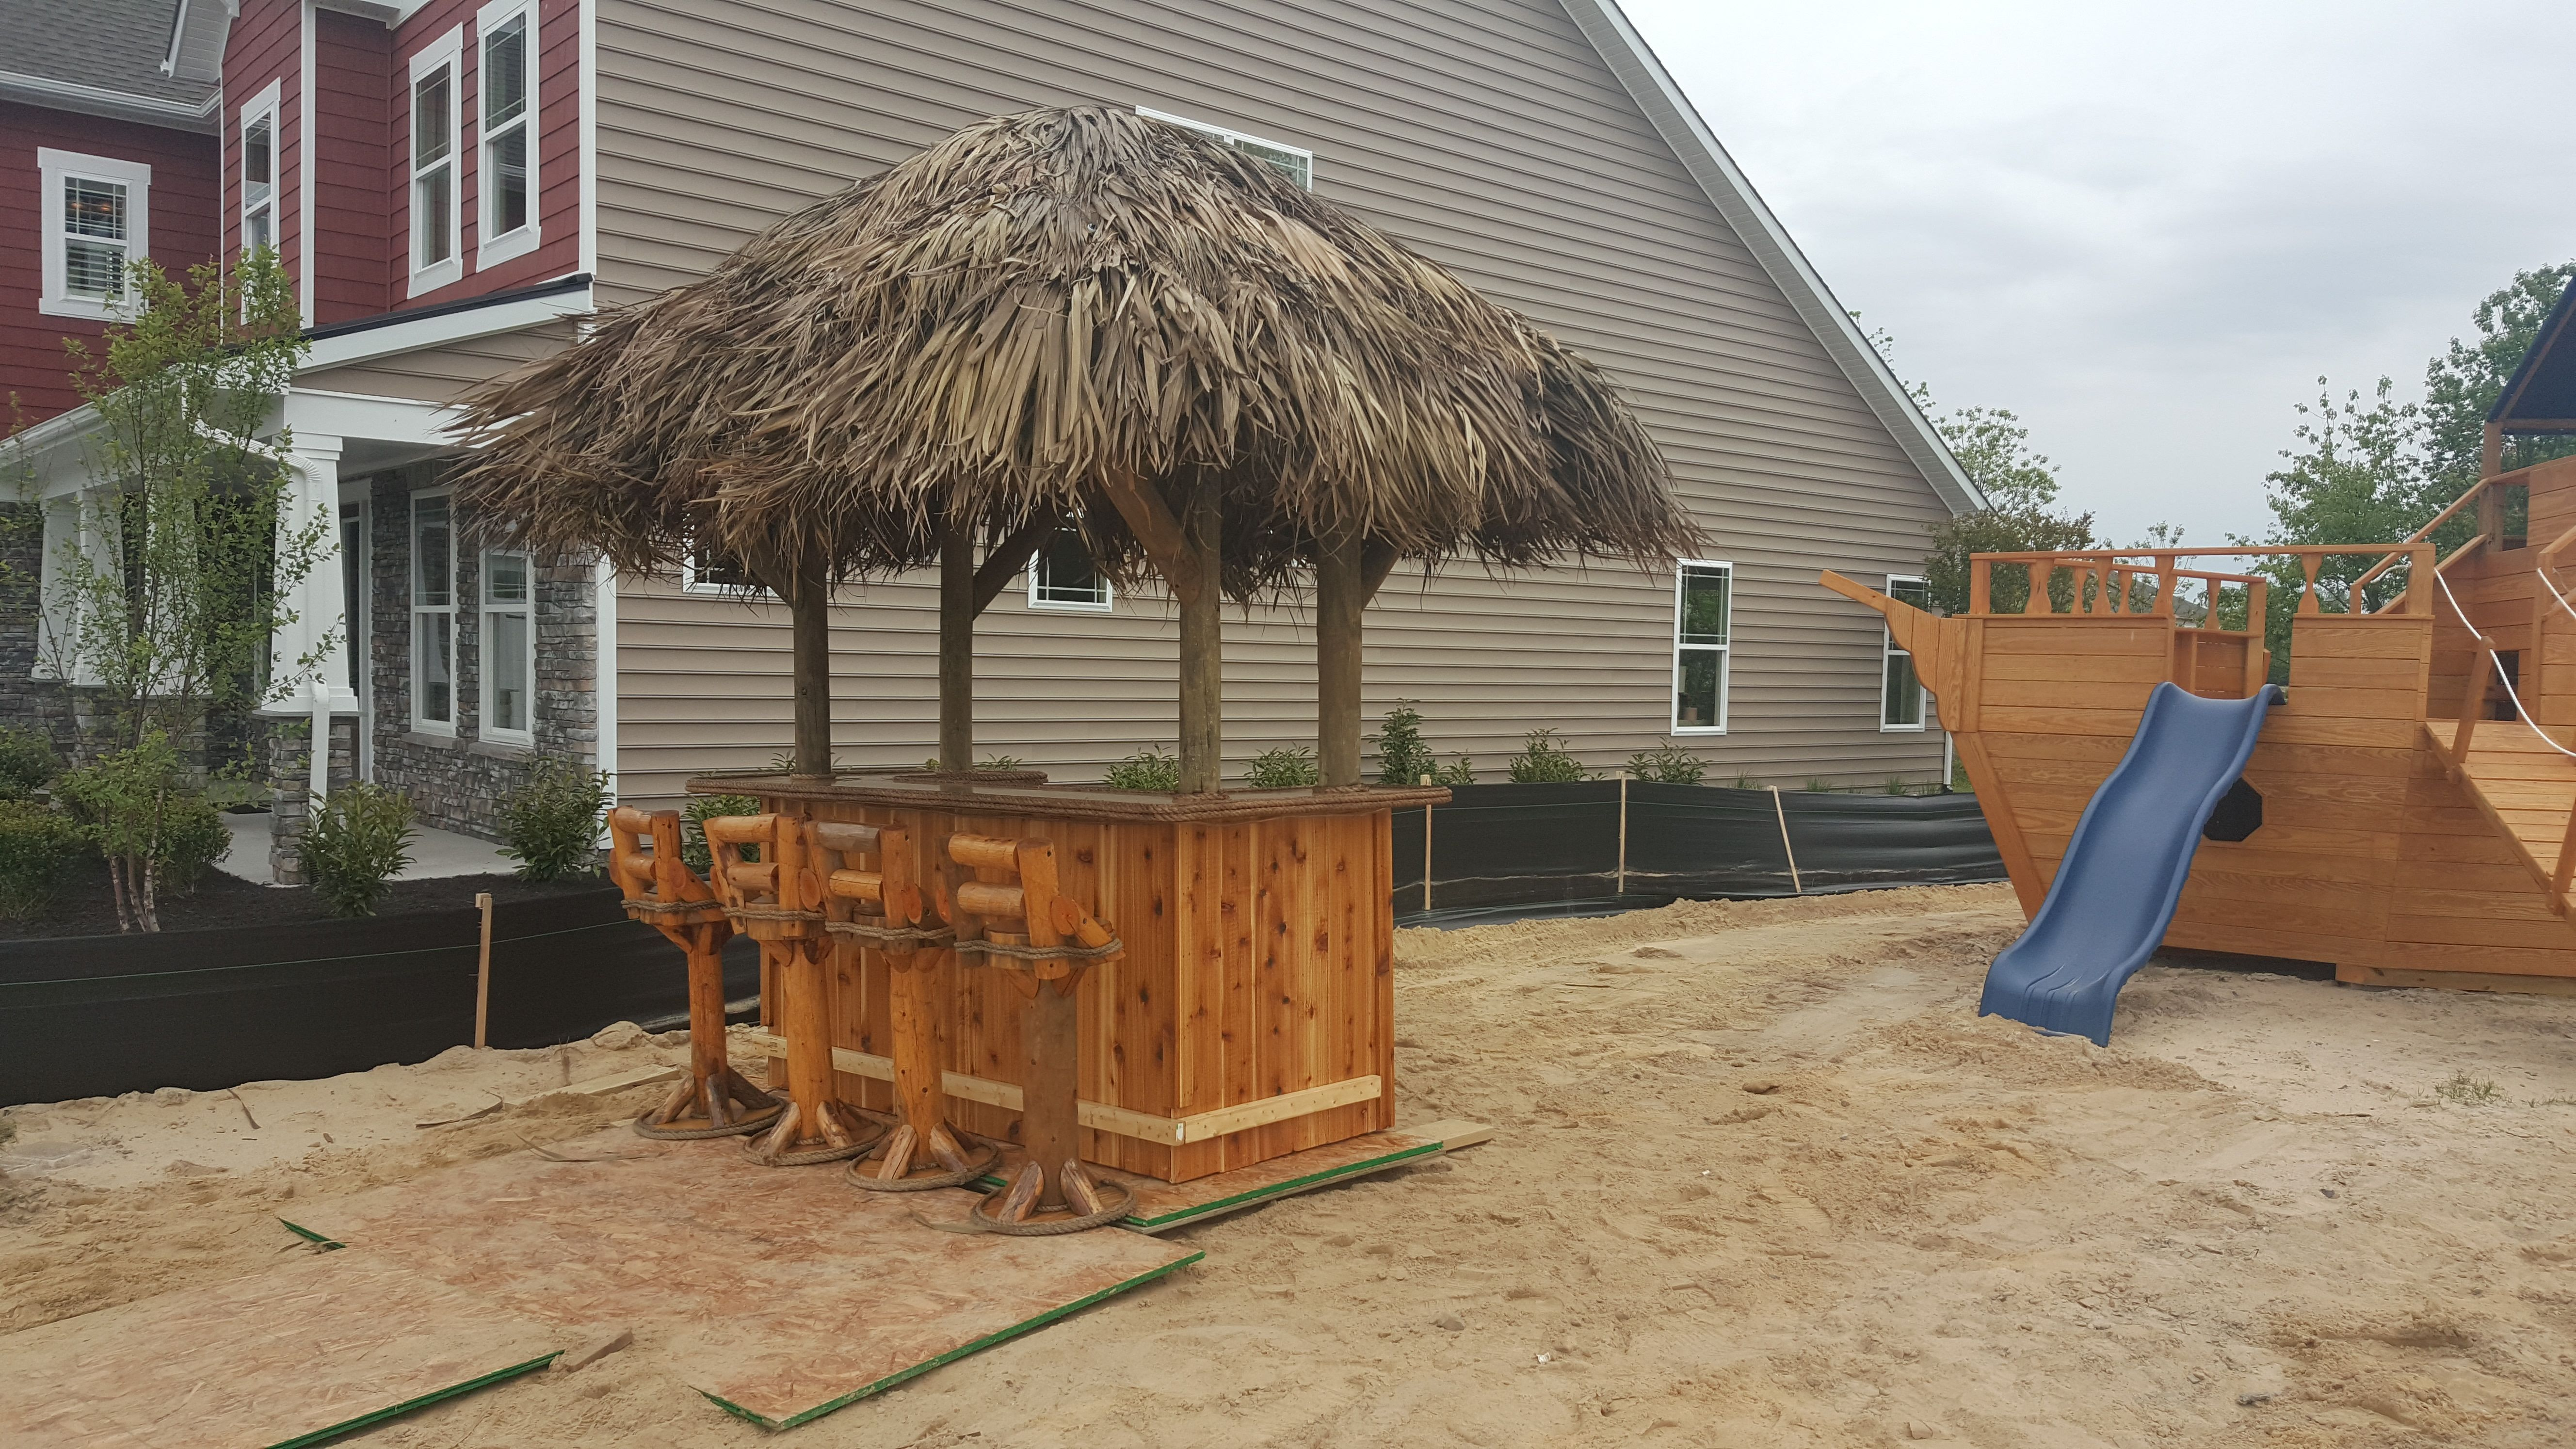 4 x 8 Tiki Bar with a 5 x 9 cedar framed thatched roof with